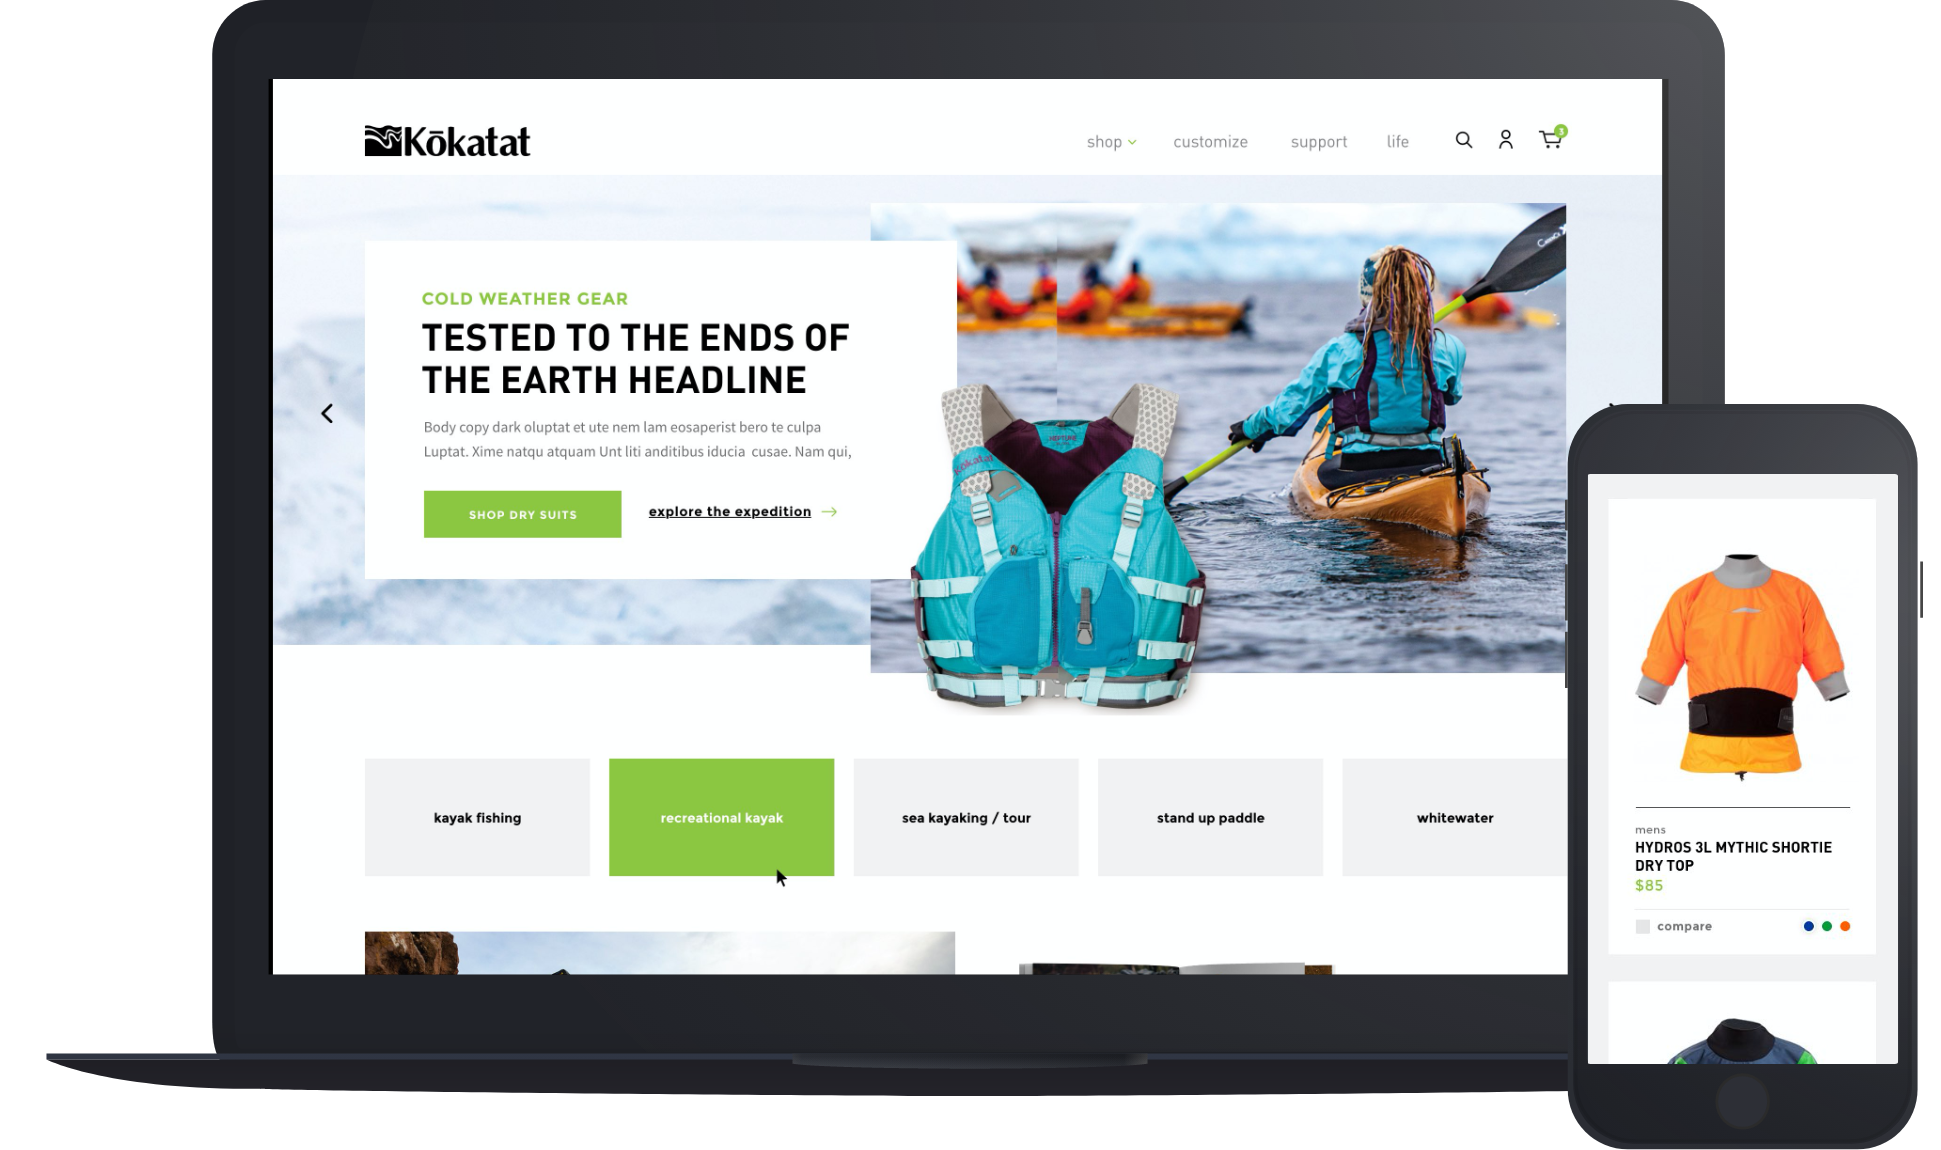 Website Redesign and BigCommerce Implementation - Kokatat